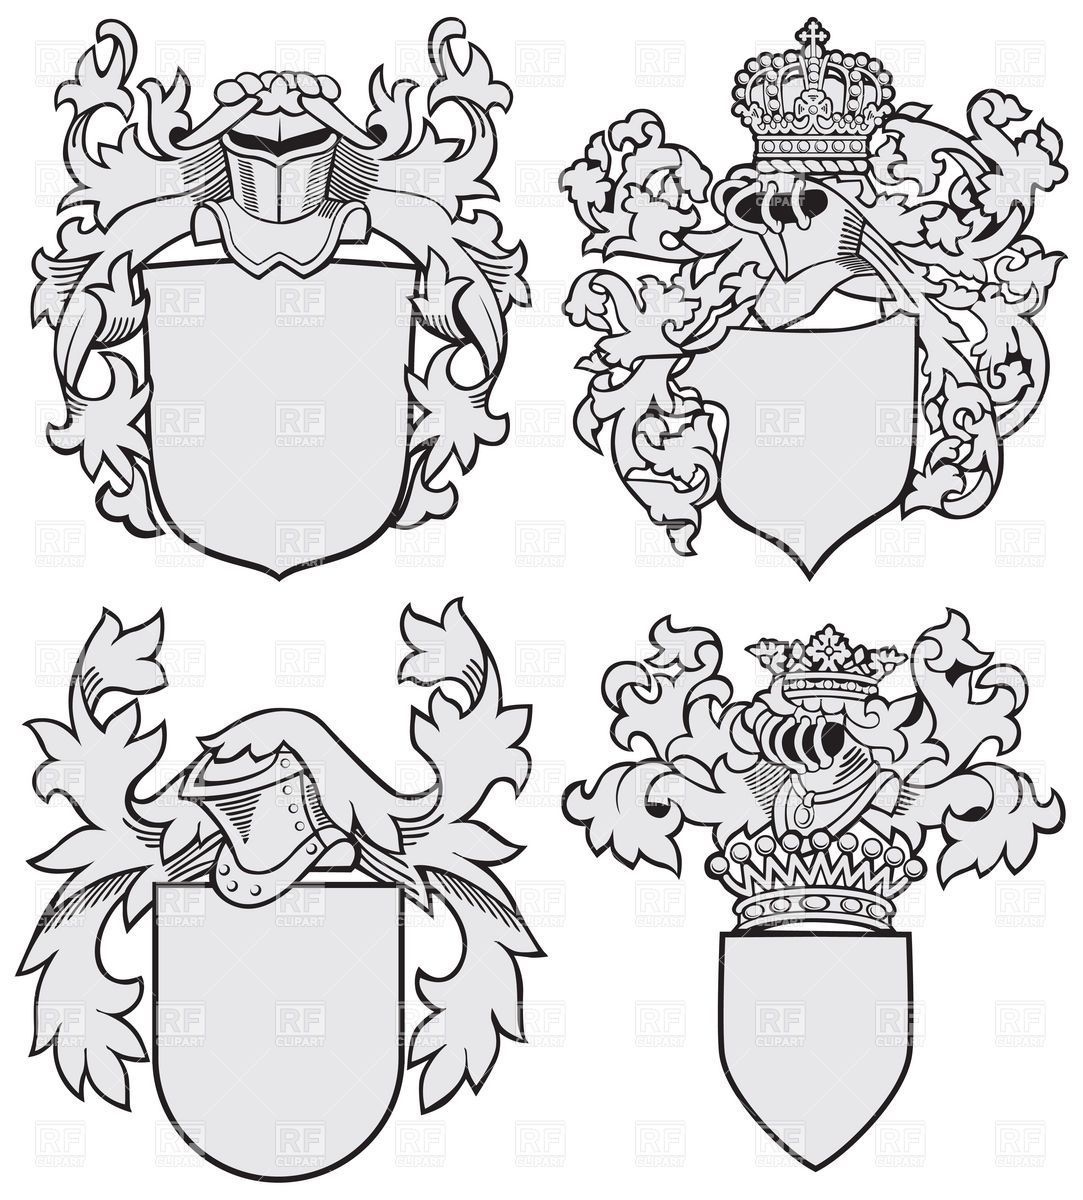 Coat Of Arms Template Lion | Coat of Arms | Pinterest | Arms, Lions ...